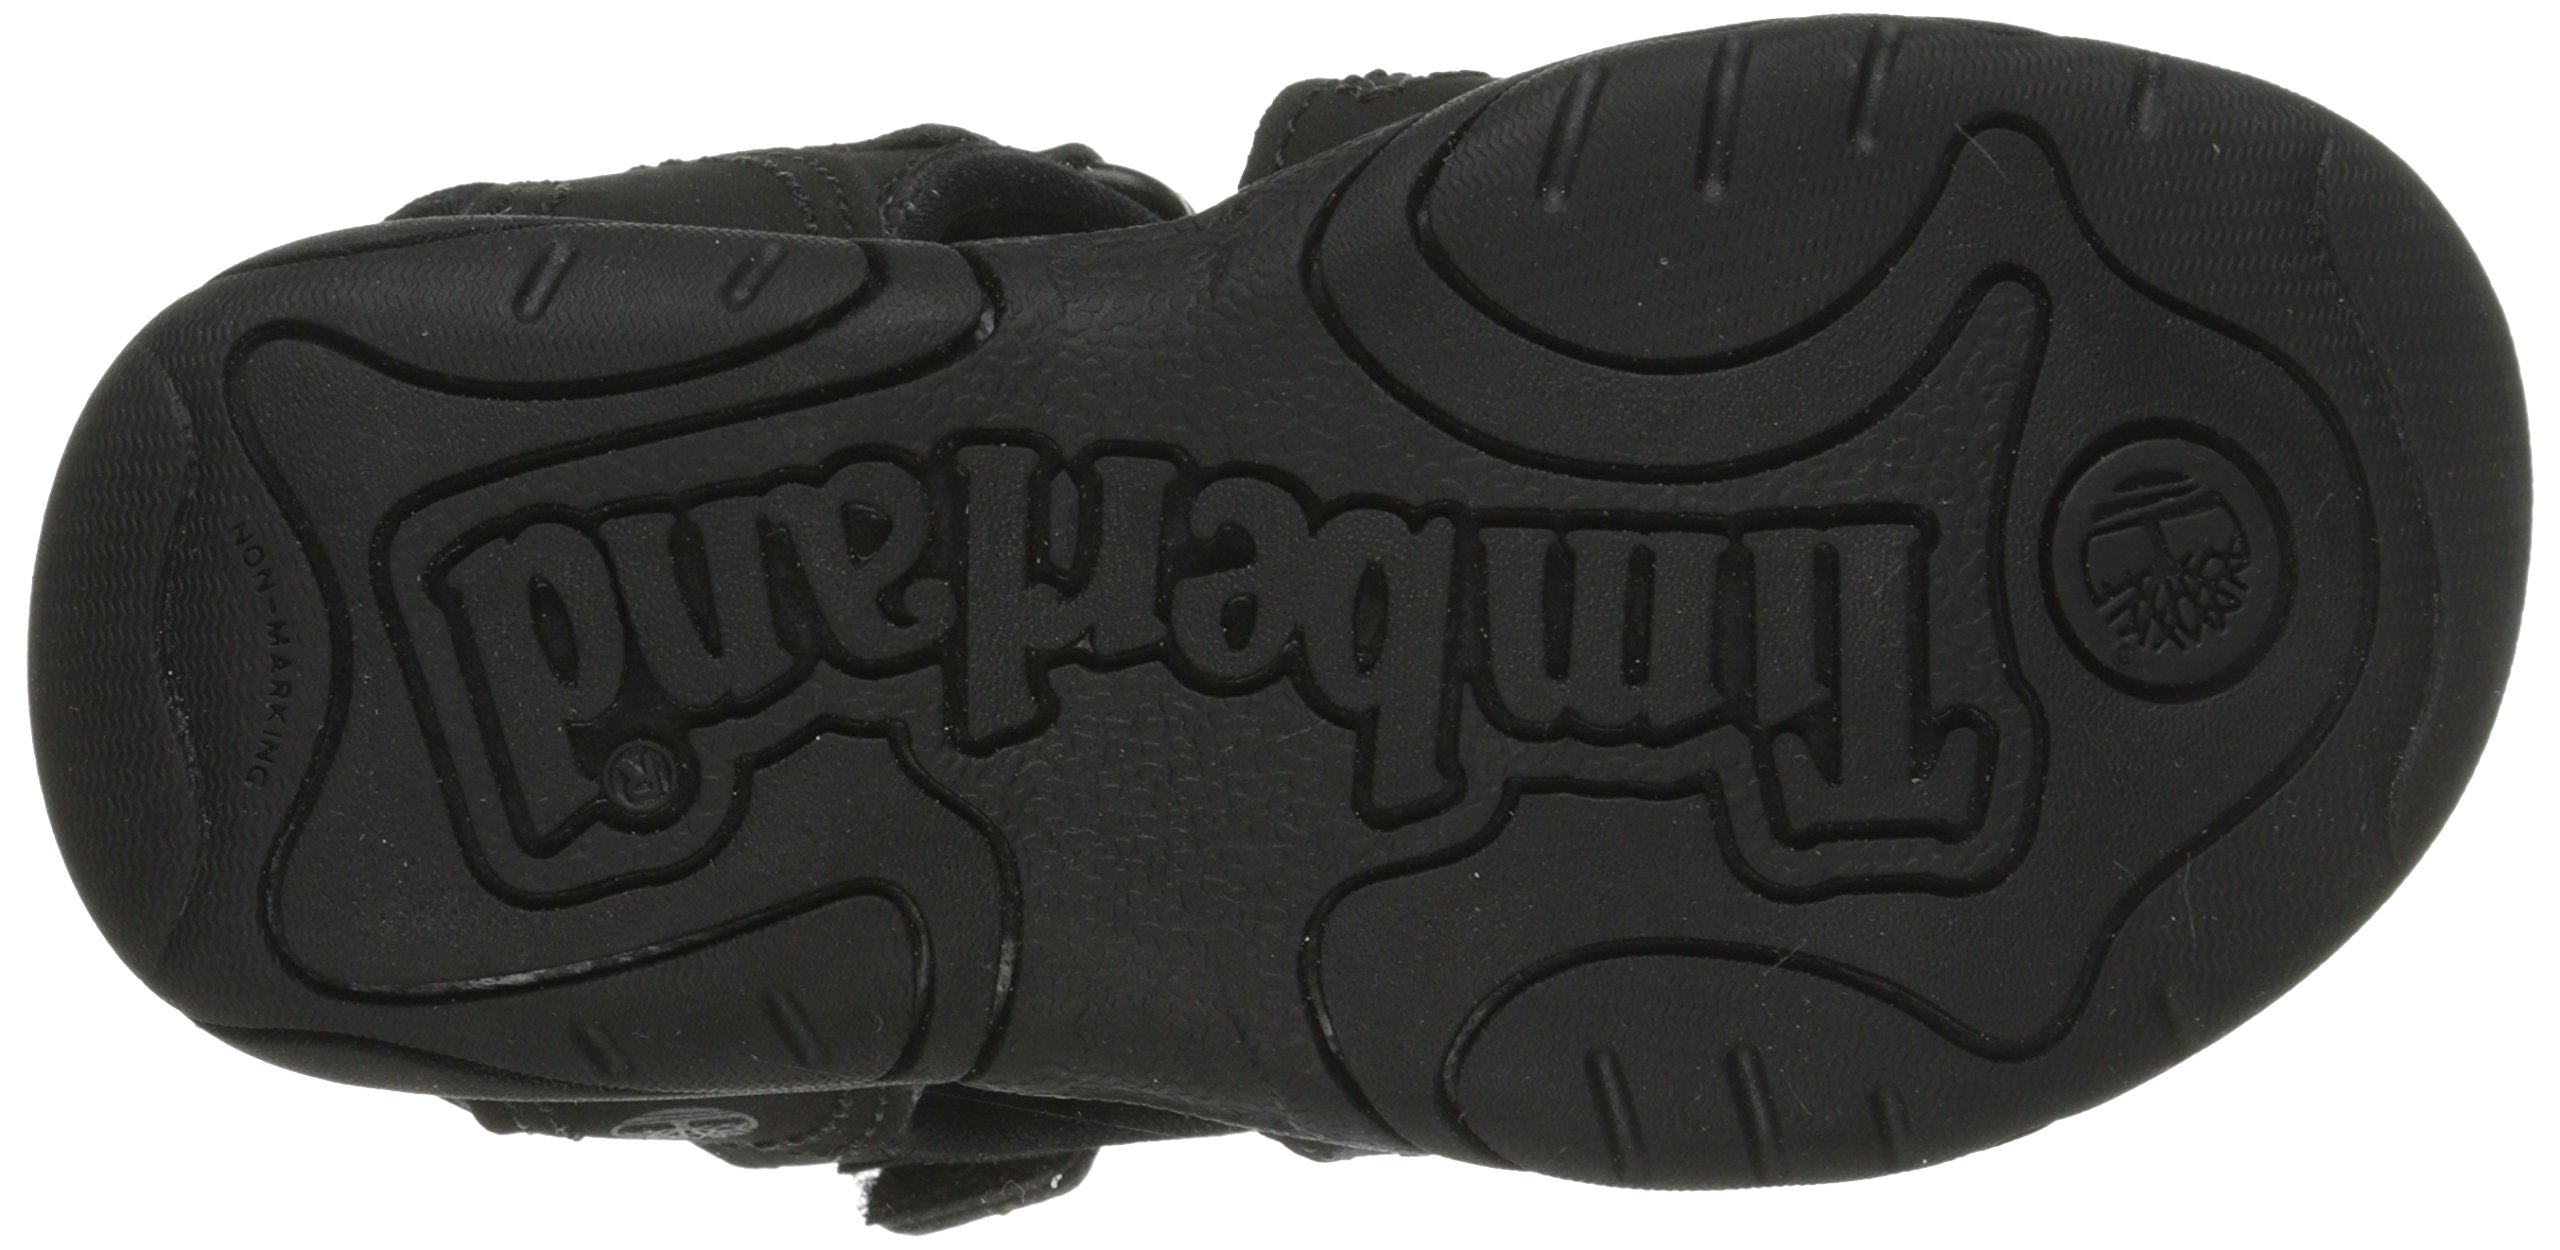 Timberland Adventure Seeker Two-Strap Sandal (Toddler/Little Kid),Blackout,9 M US Toddler by Timberland (Image #3)